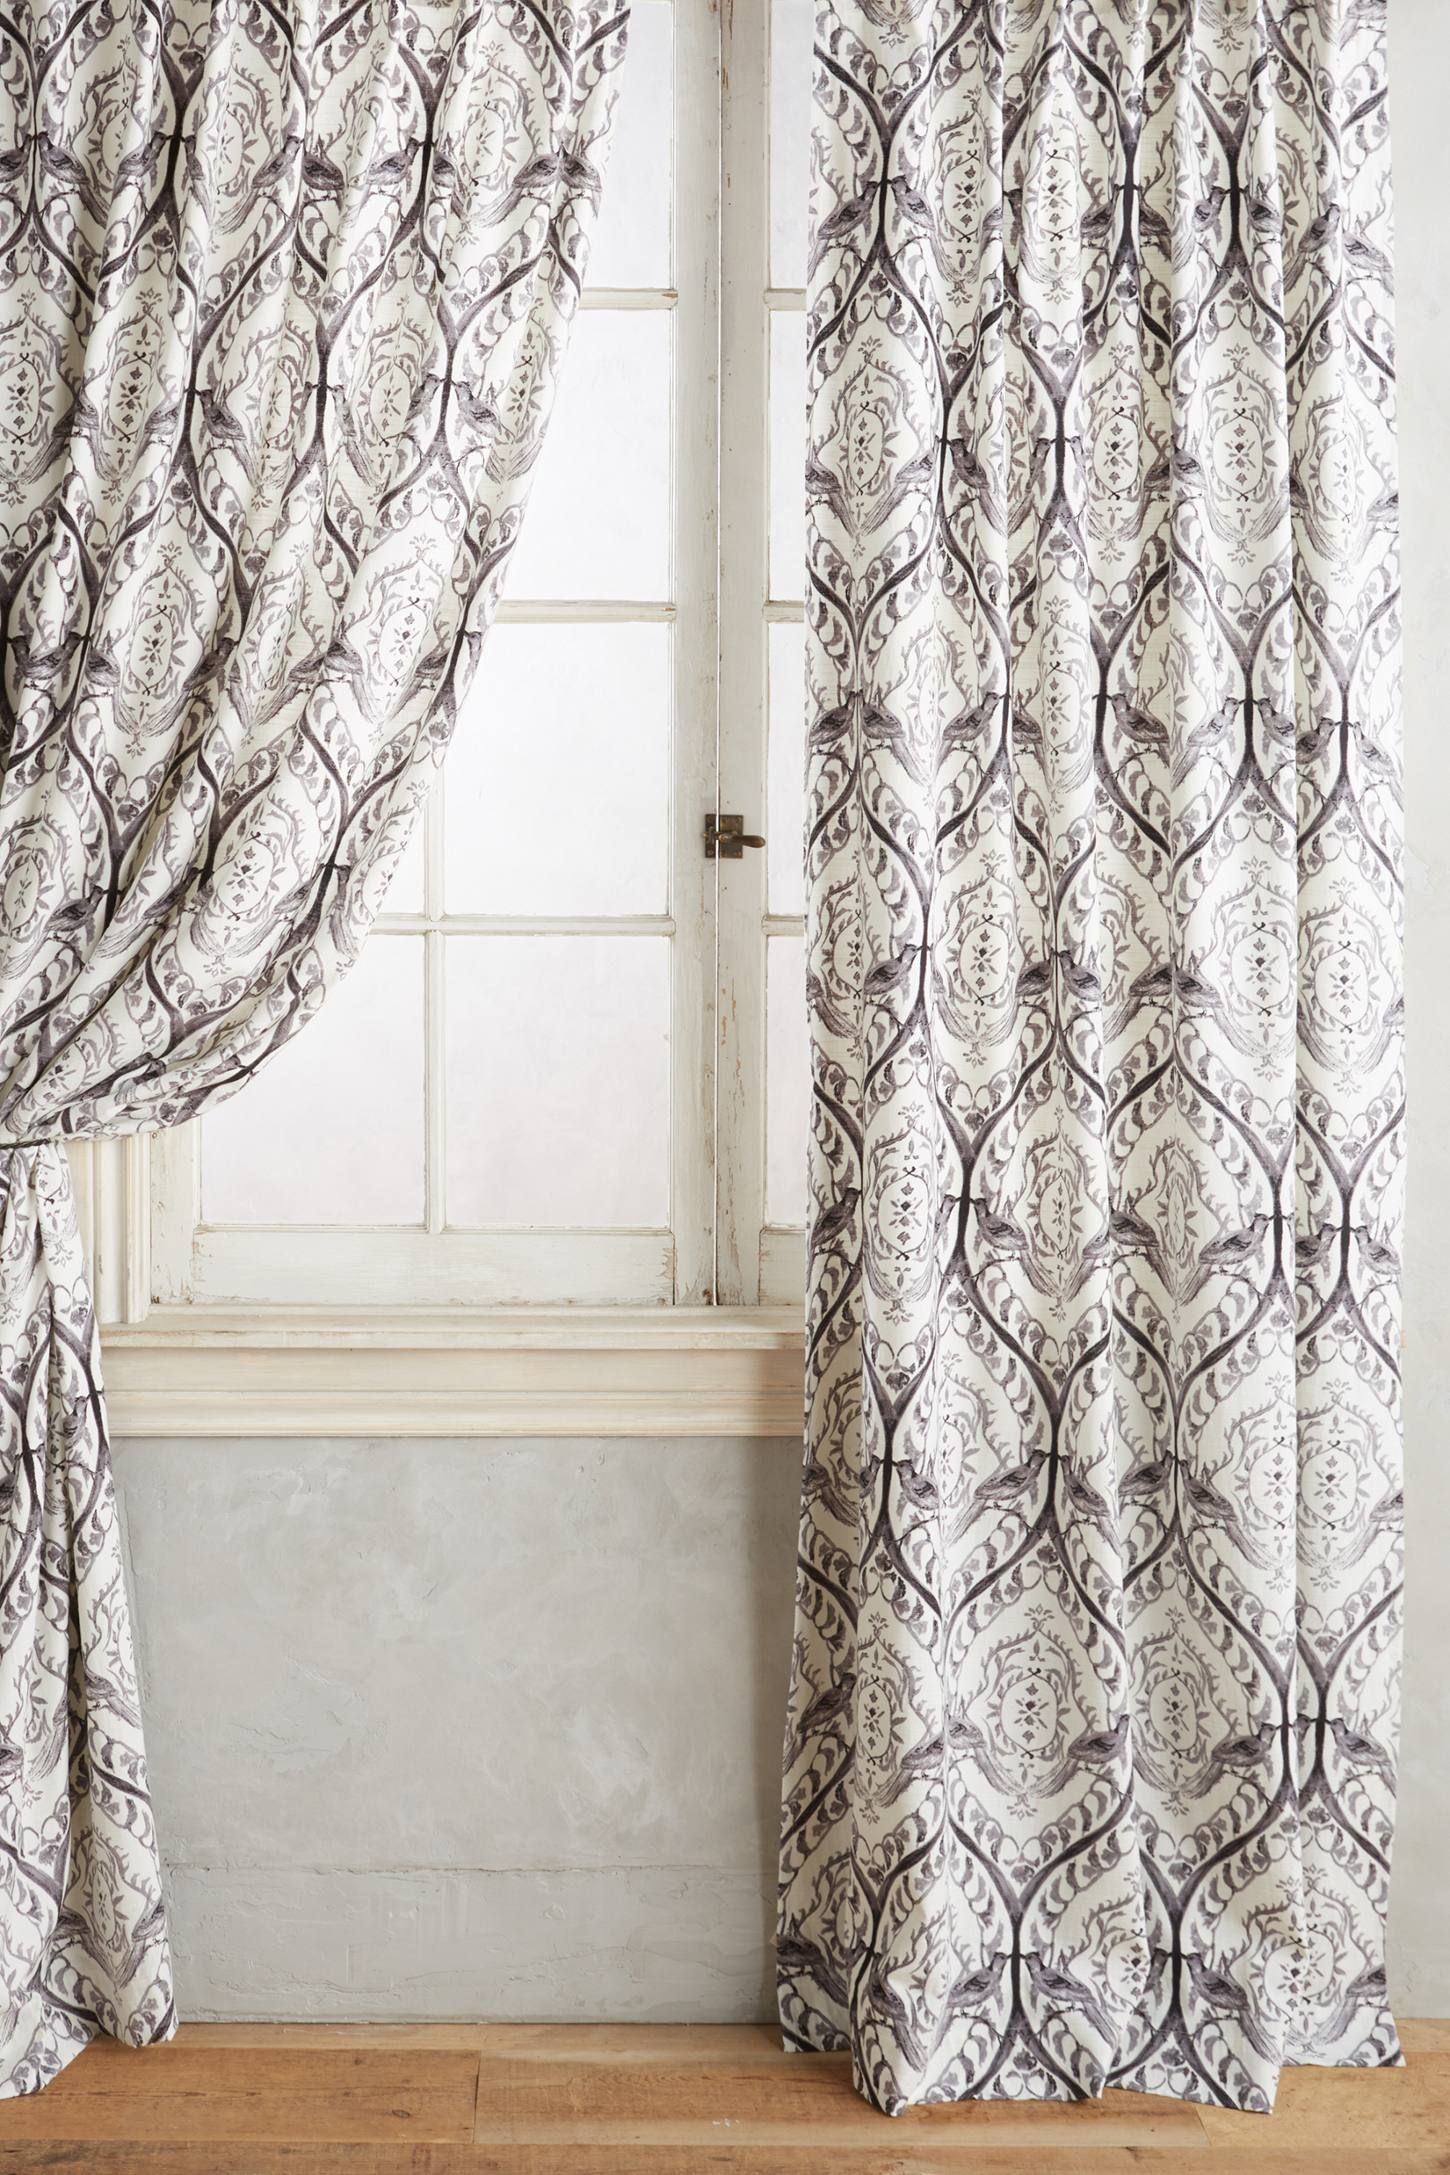 Smithery Curtain Rod | Living room curtains, Master bedroom and House